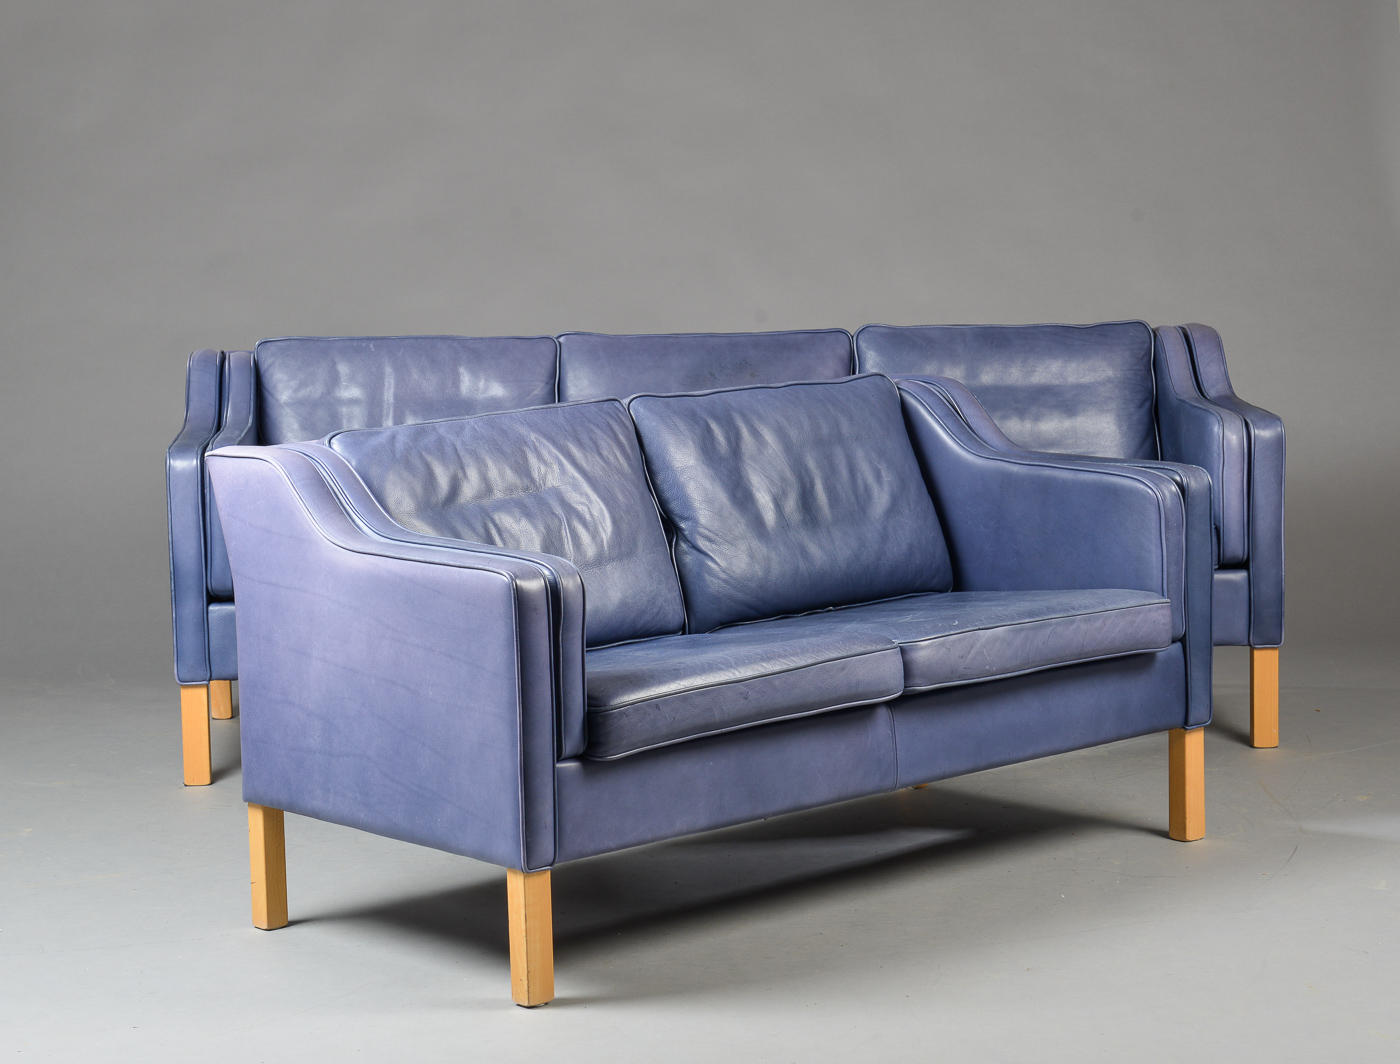 Samt Couch. Latest Sofa Trkis With Samt Couch. Ztov Samety